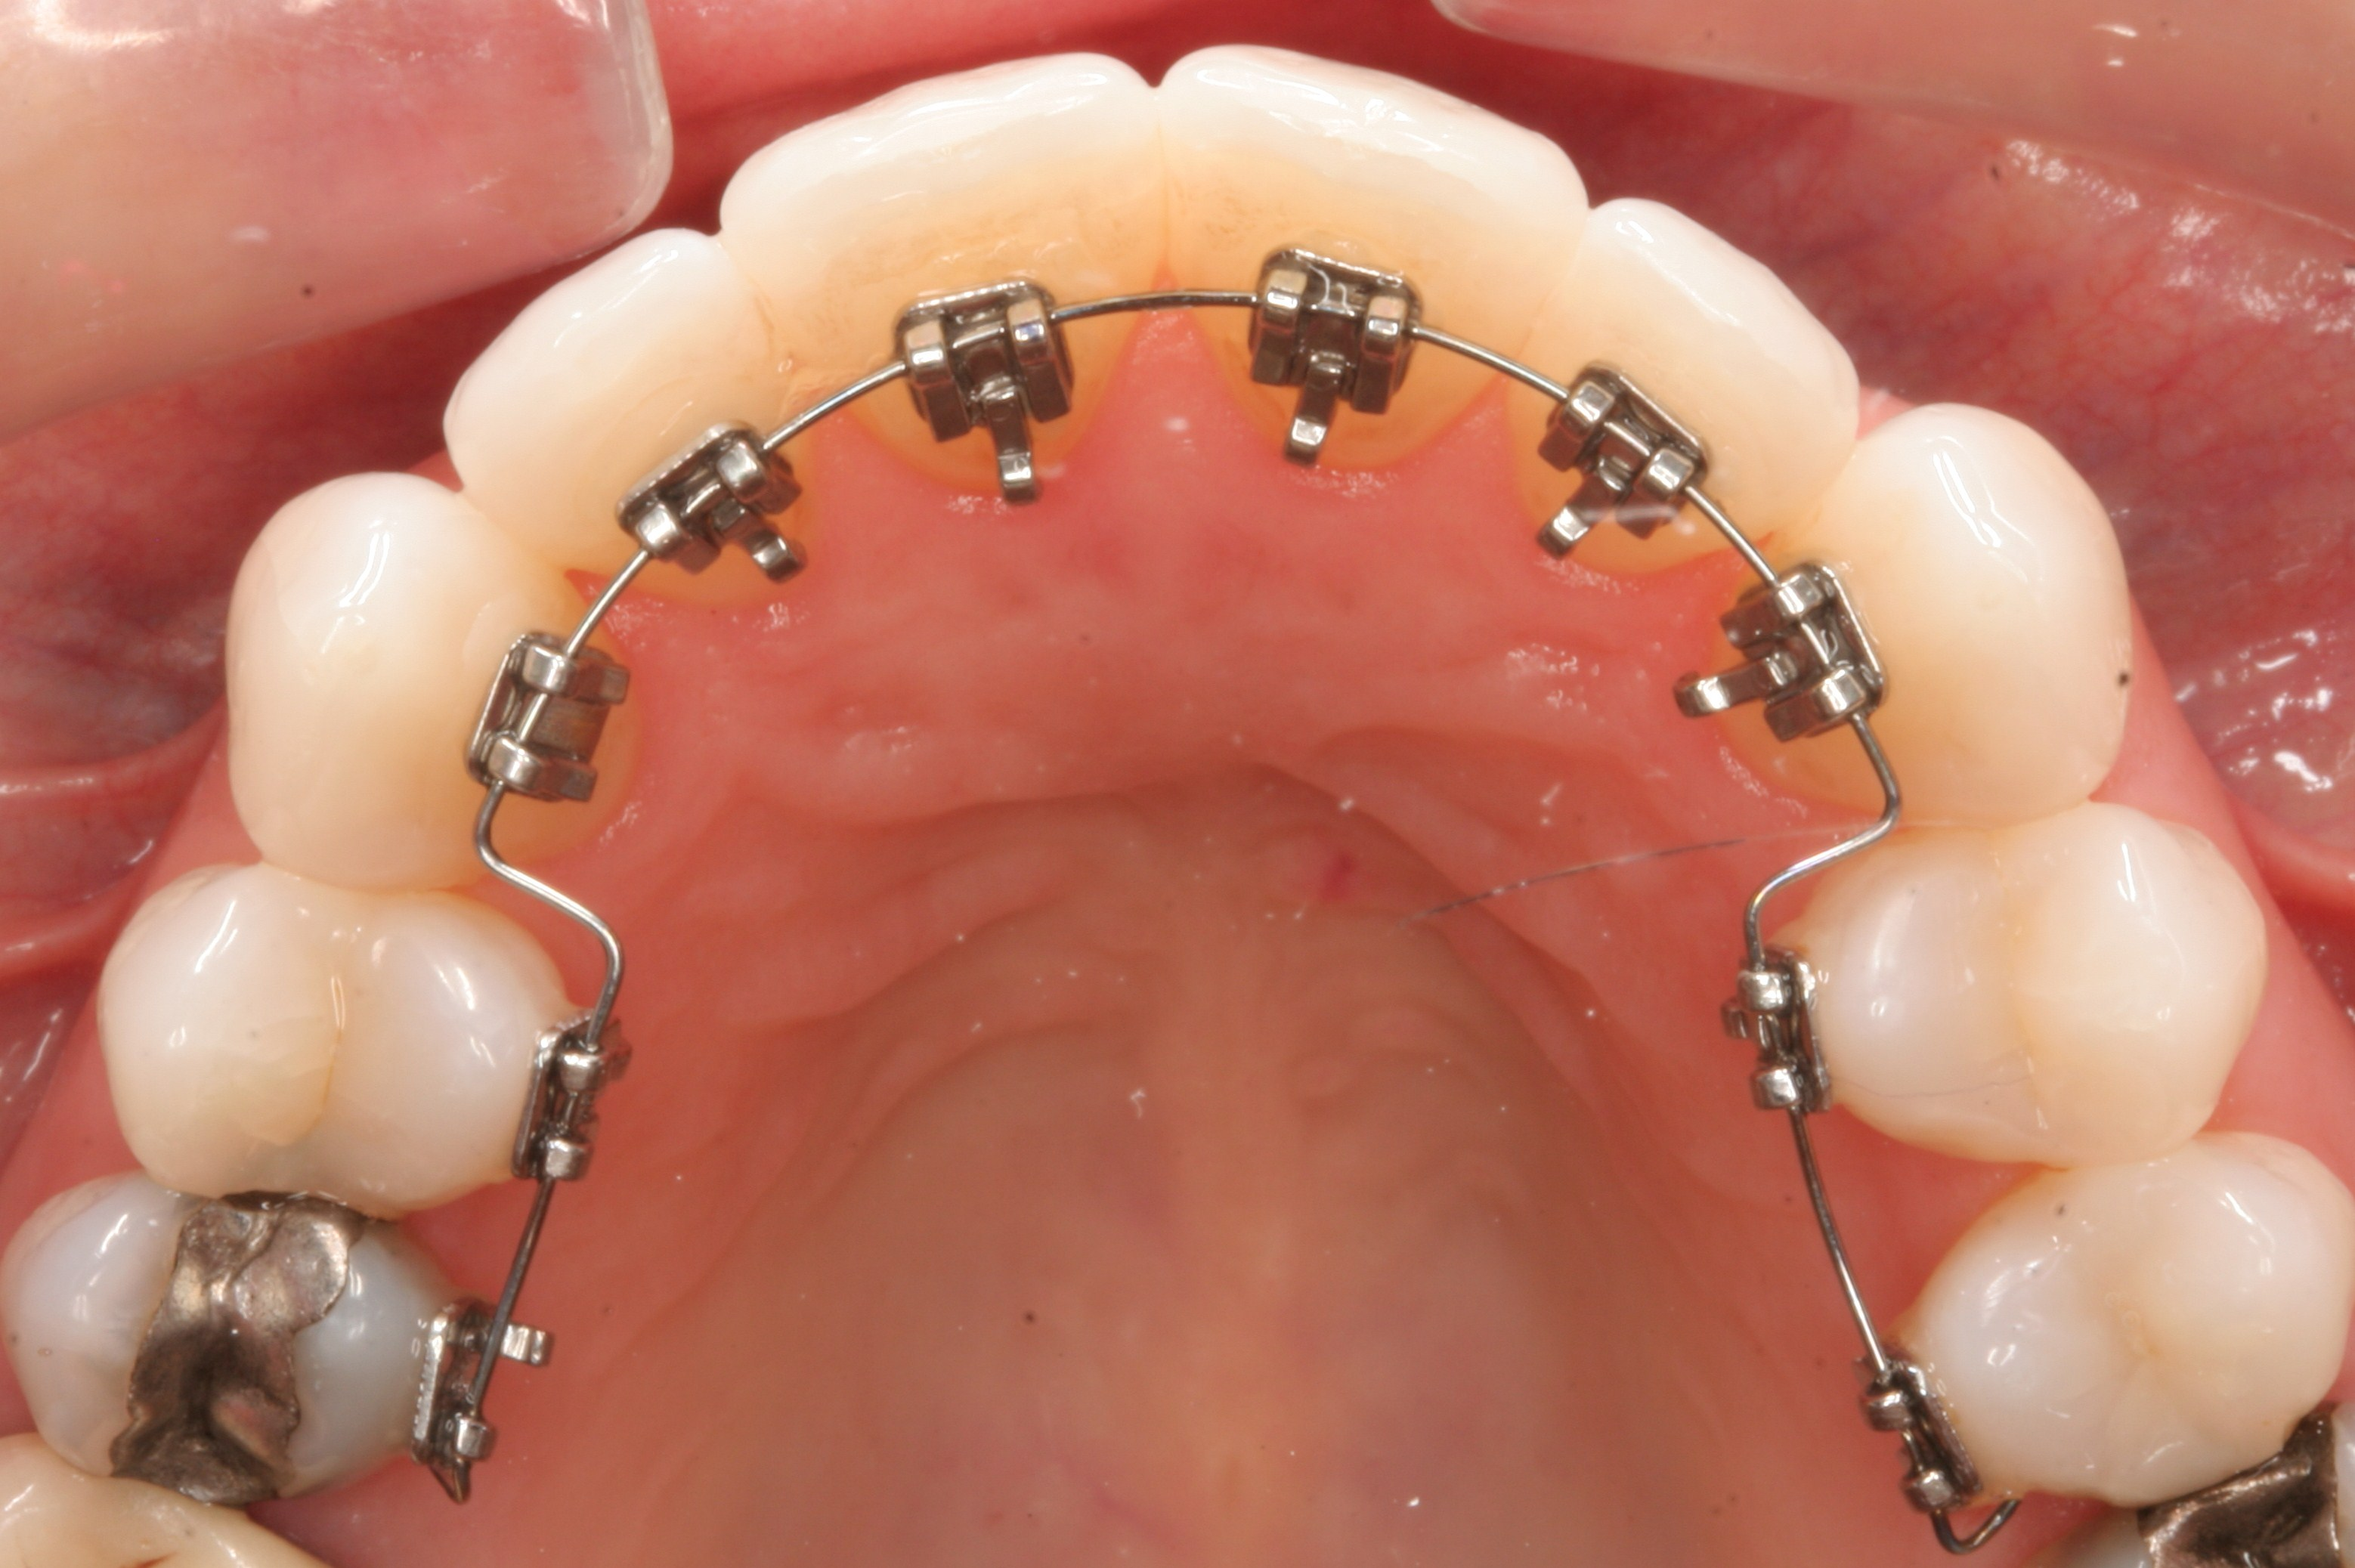 How much do braces cost in the uk the dental guide lingual braces solutioingenieria Image collections